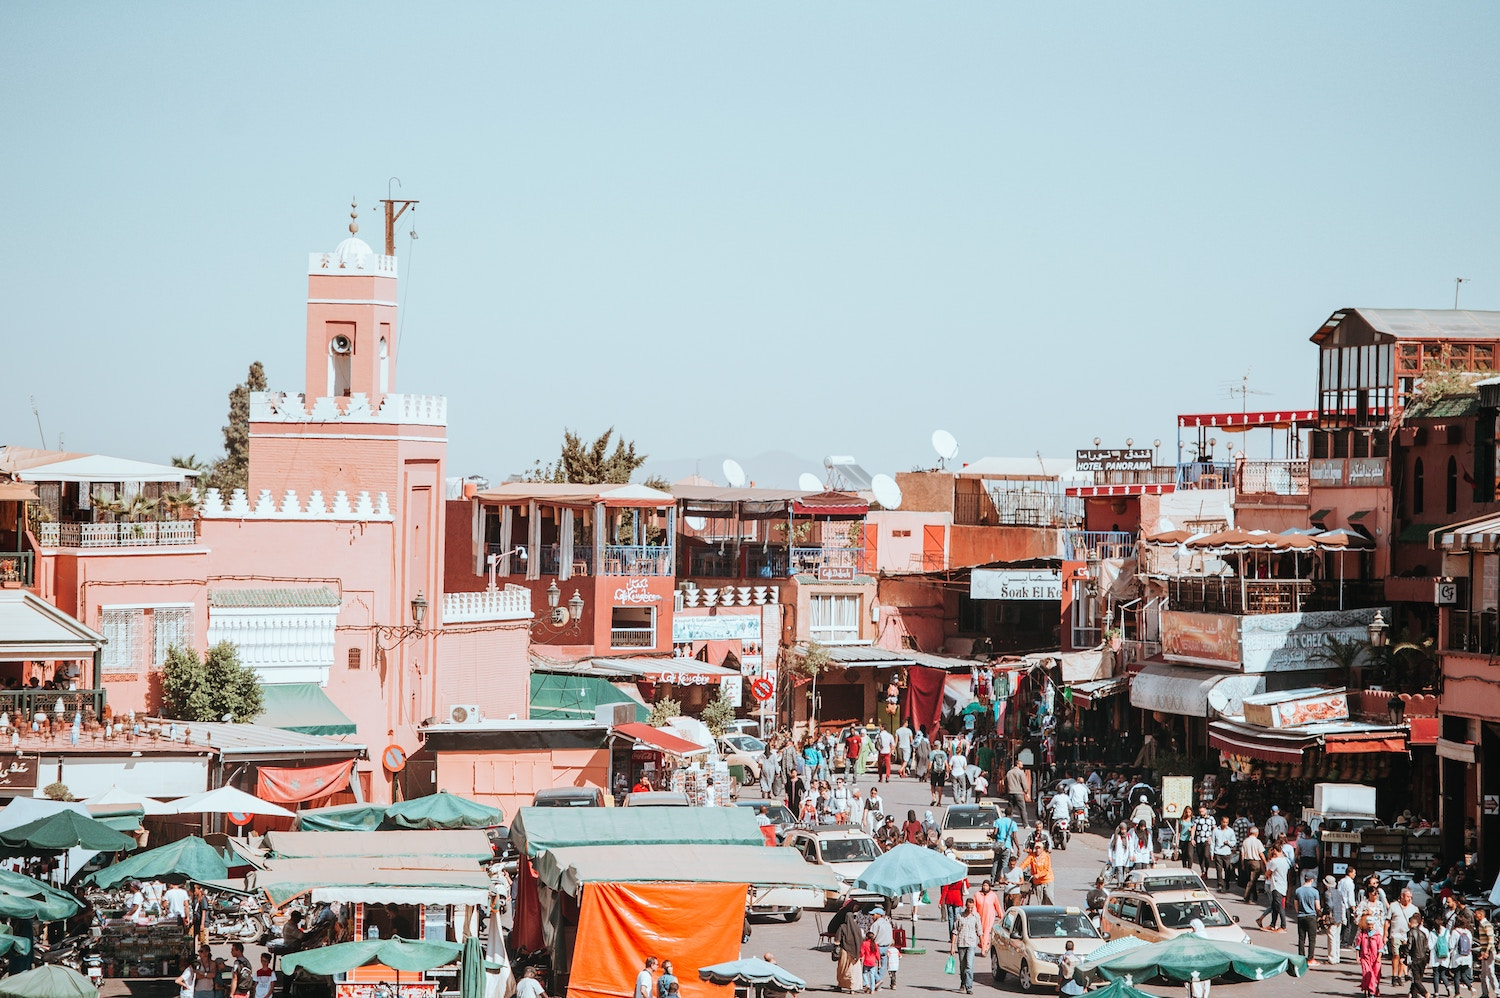 Marrakech, Morocco | The City that Inspired Fashion Icon, Yves Saint-Laurent Most